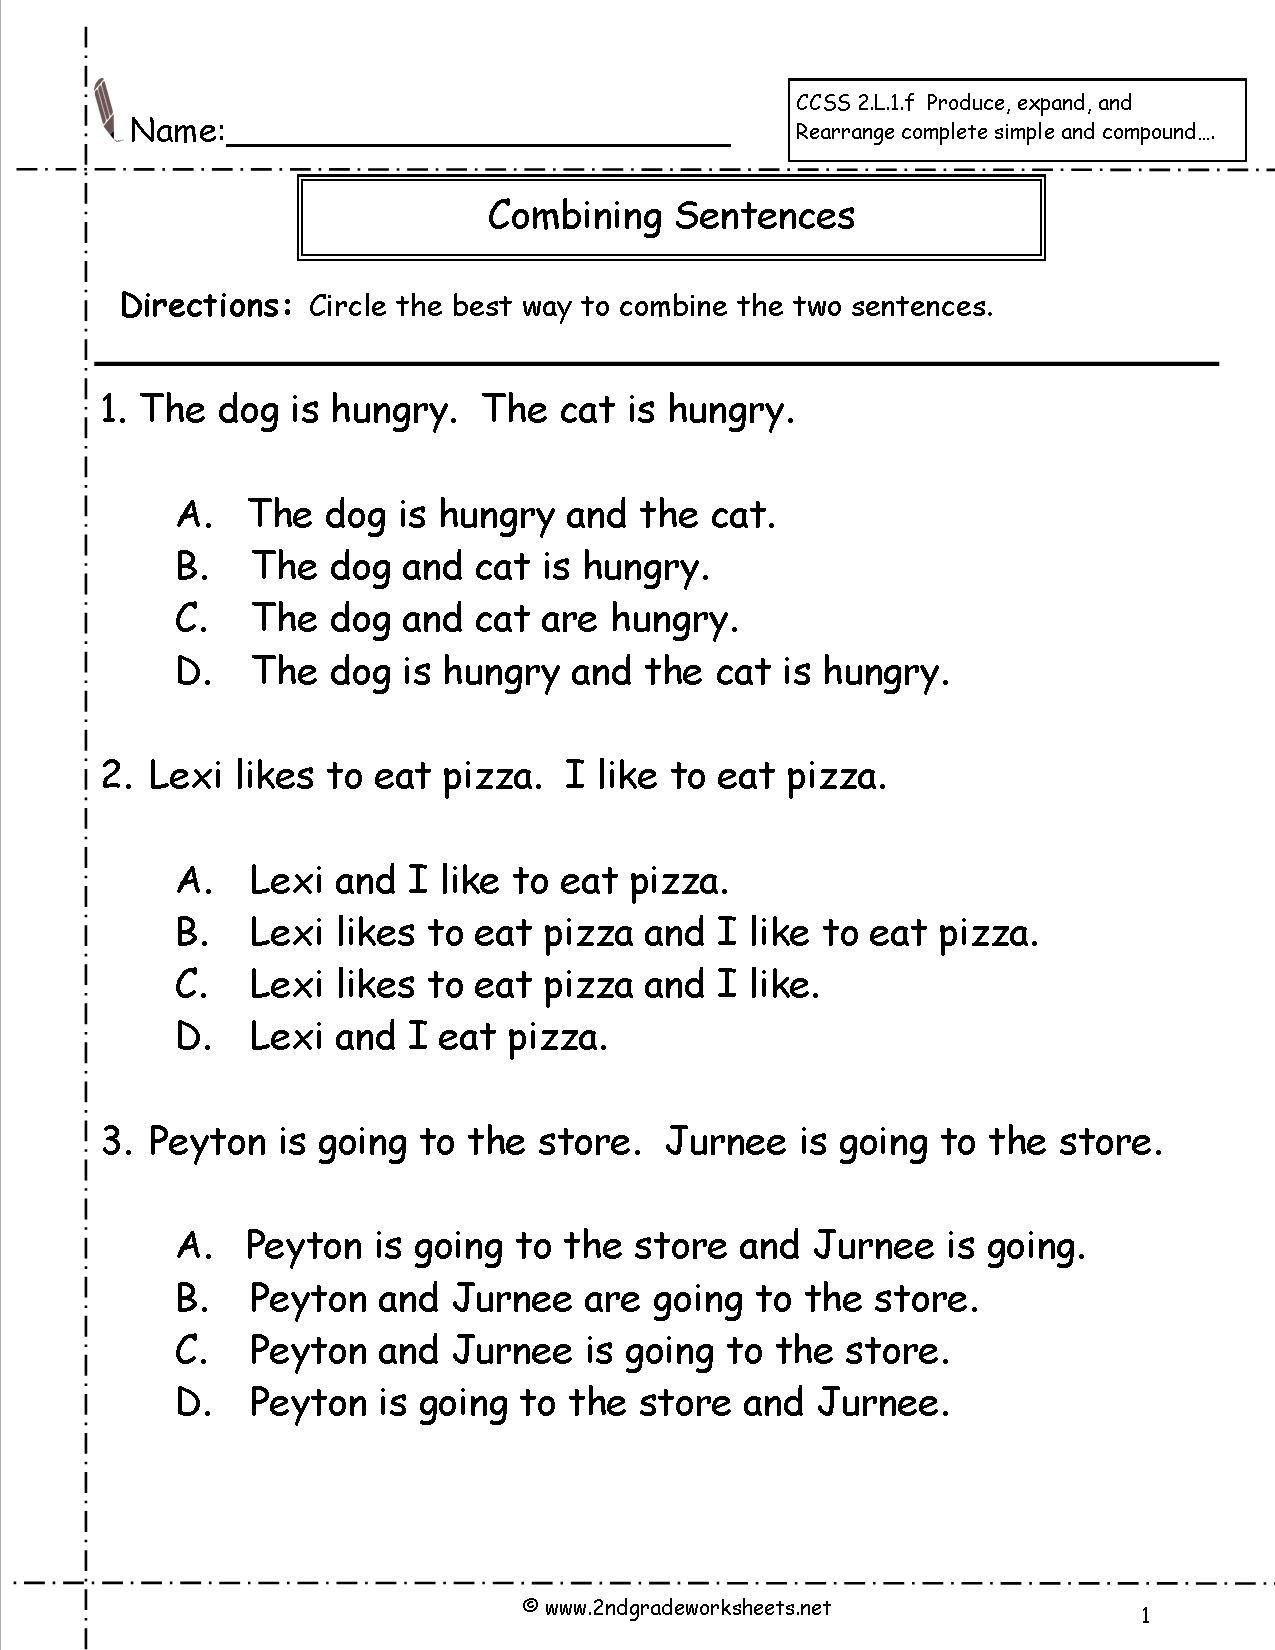 Simple Sentences Worksheet 3rd Grade Bining Sentences Worksheet In 2021 Complex Sentences Worksheets Combining Sentences Simple And Compound Sentences